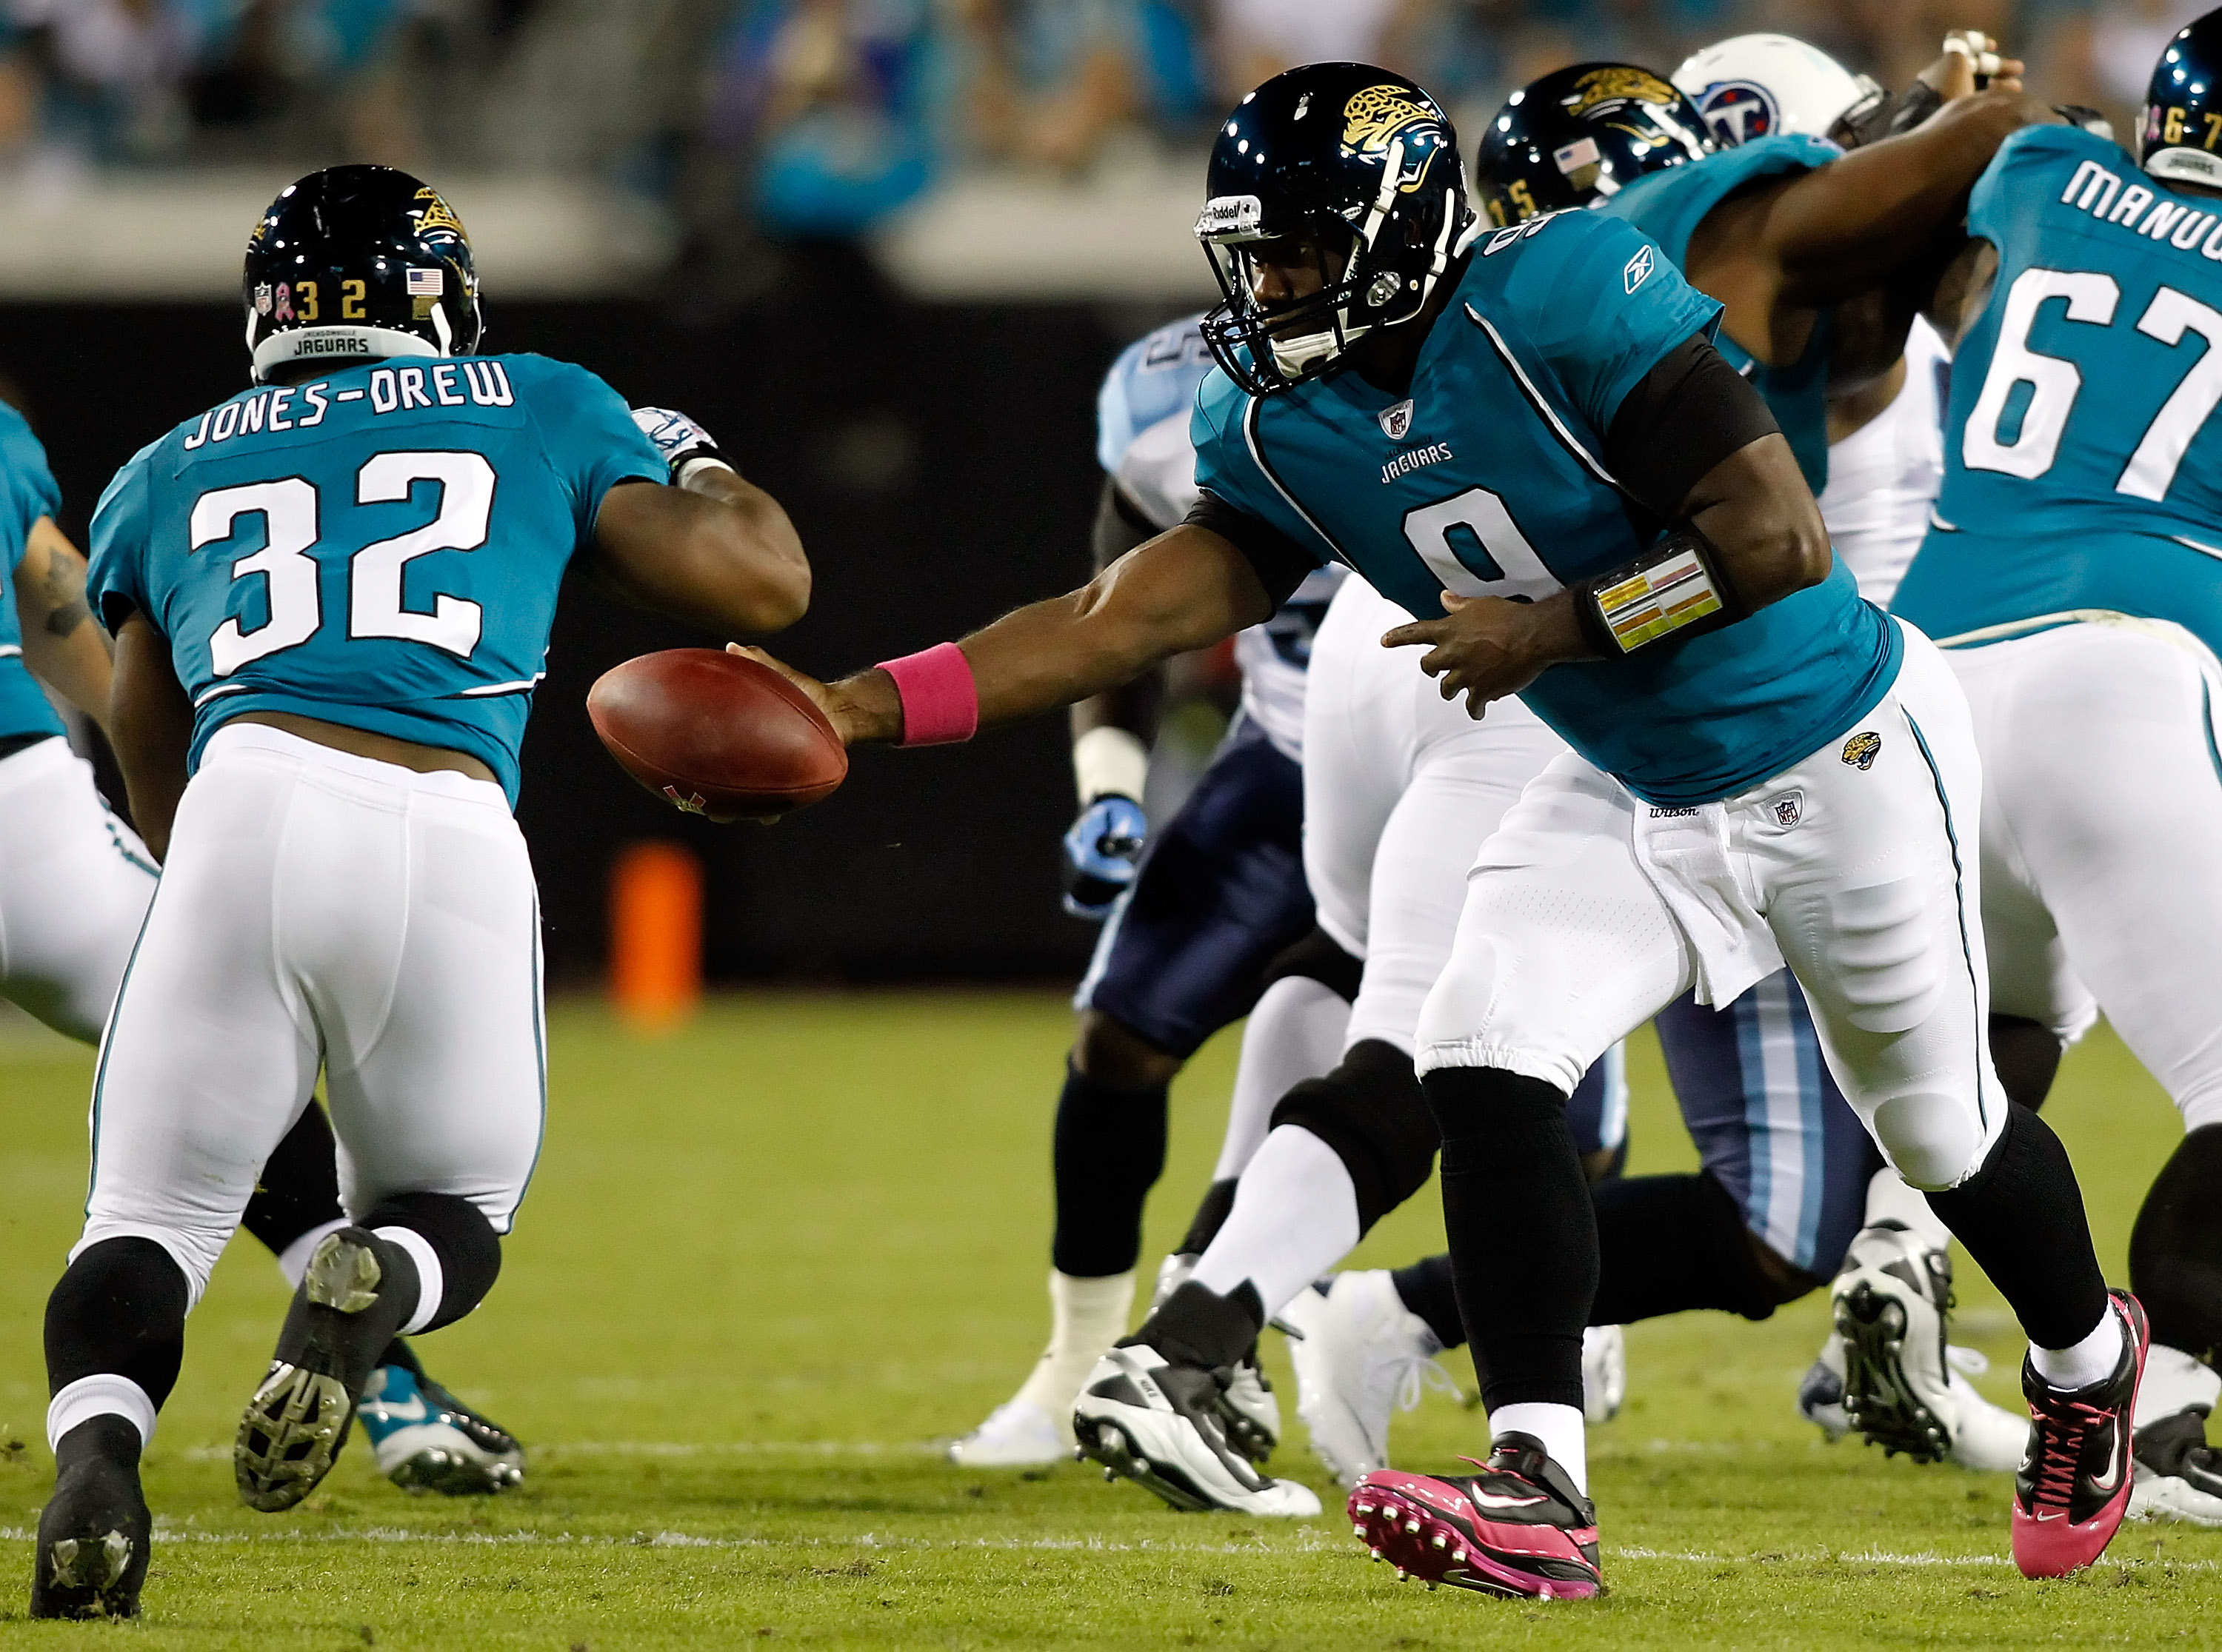 JACKSONVILLE, FL - OCTOBER 18:  Quarterback David Garrard #9 of the Jacksonville Jaguars hands the ball off to running back Maurice Jones-Drew #32 against the Tennessee Titans during the game at EverBank Field on October 18, 2010 in Jacksonville, Florida.